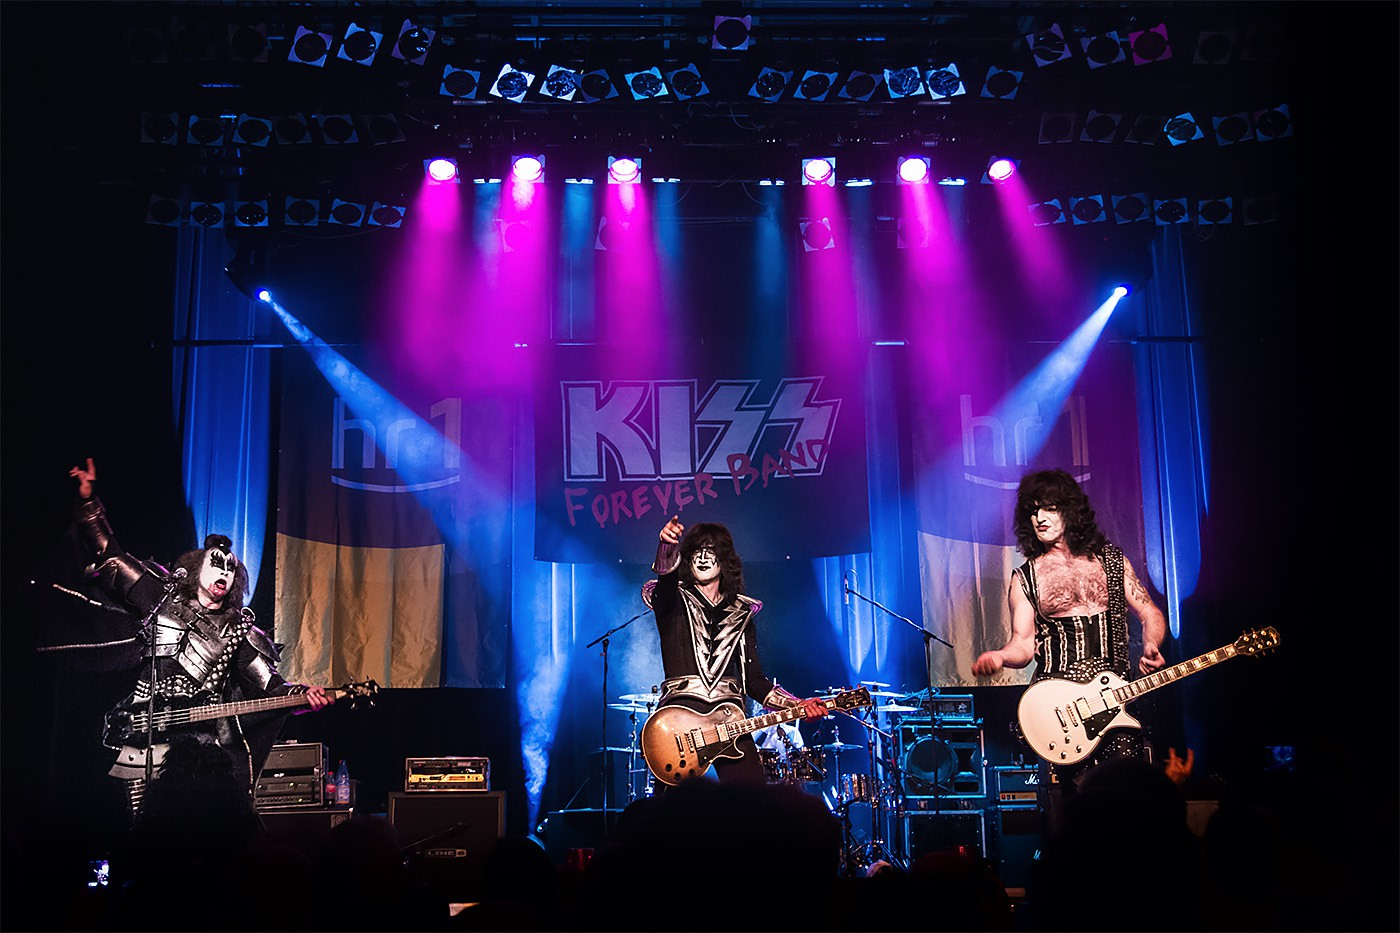 Kiss forever Band Open Doors Festival Neu Isenburg